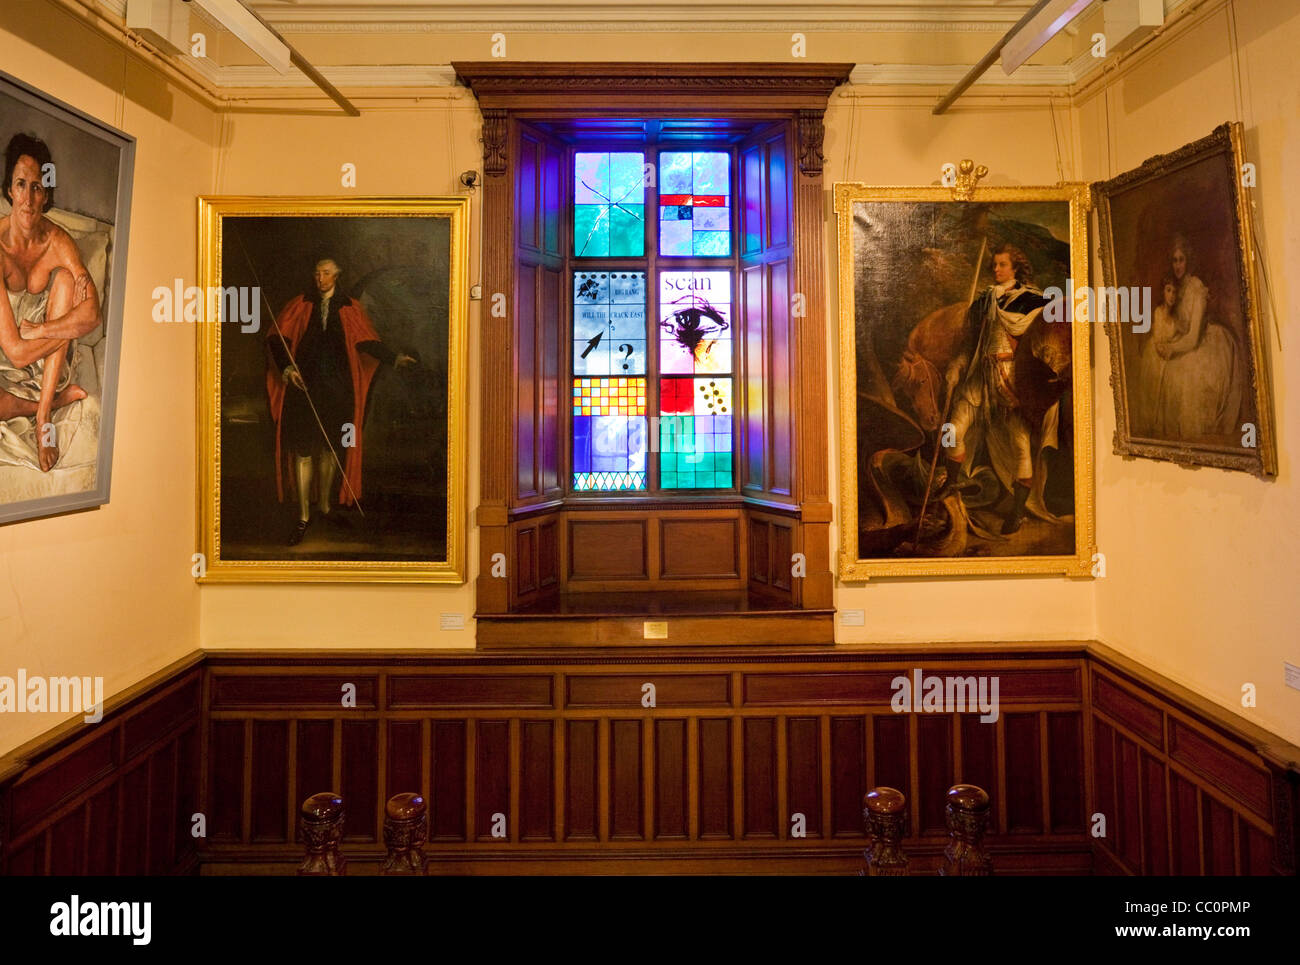 Staircase, Stained Glass Windows, and Paintings Interior of the Crawford Art Gallery, Cork City, Ireland - Stock Image